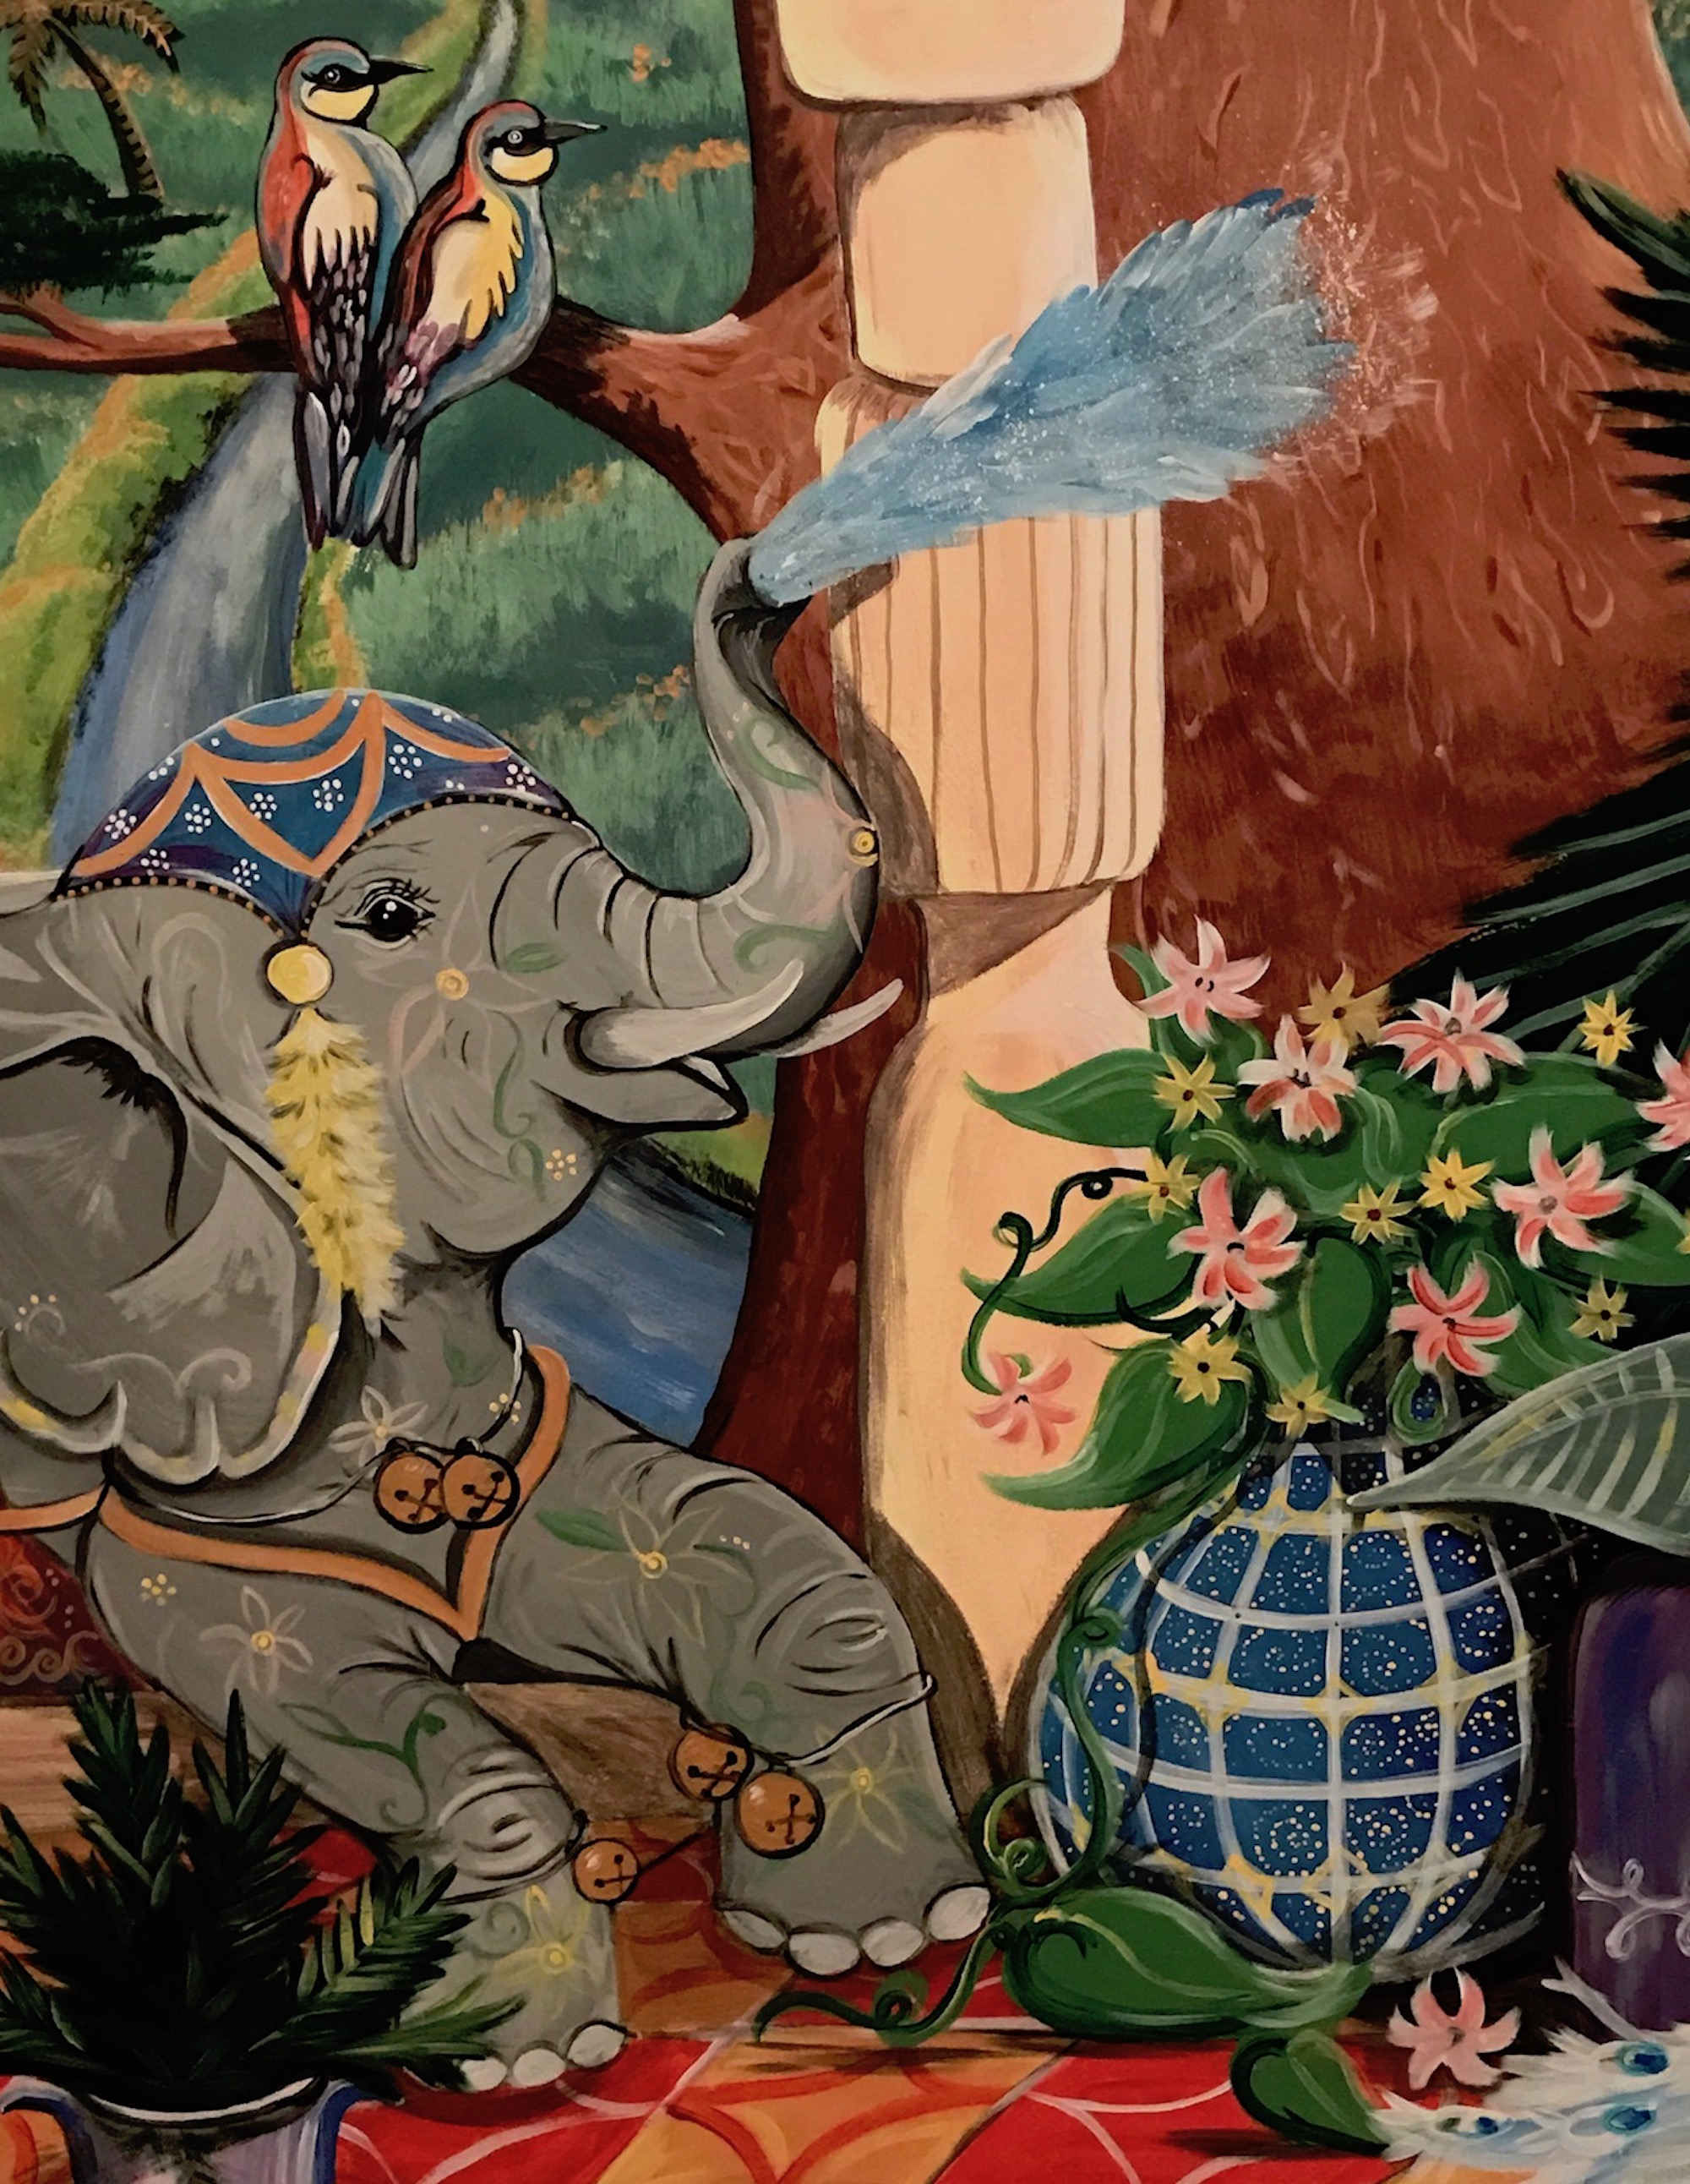 detail of commissioned mural painted by SAS owner and artist Samantha Silvas.